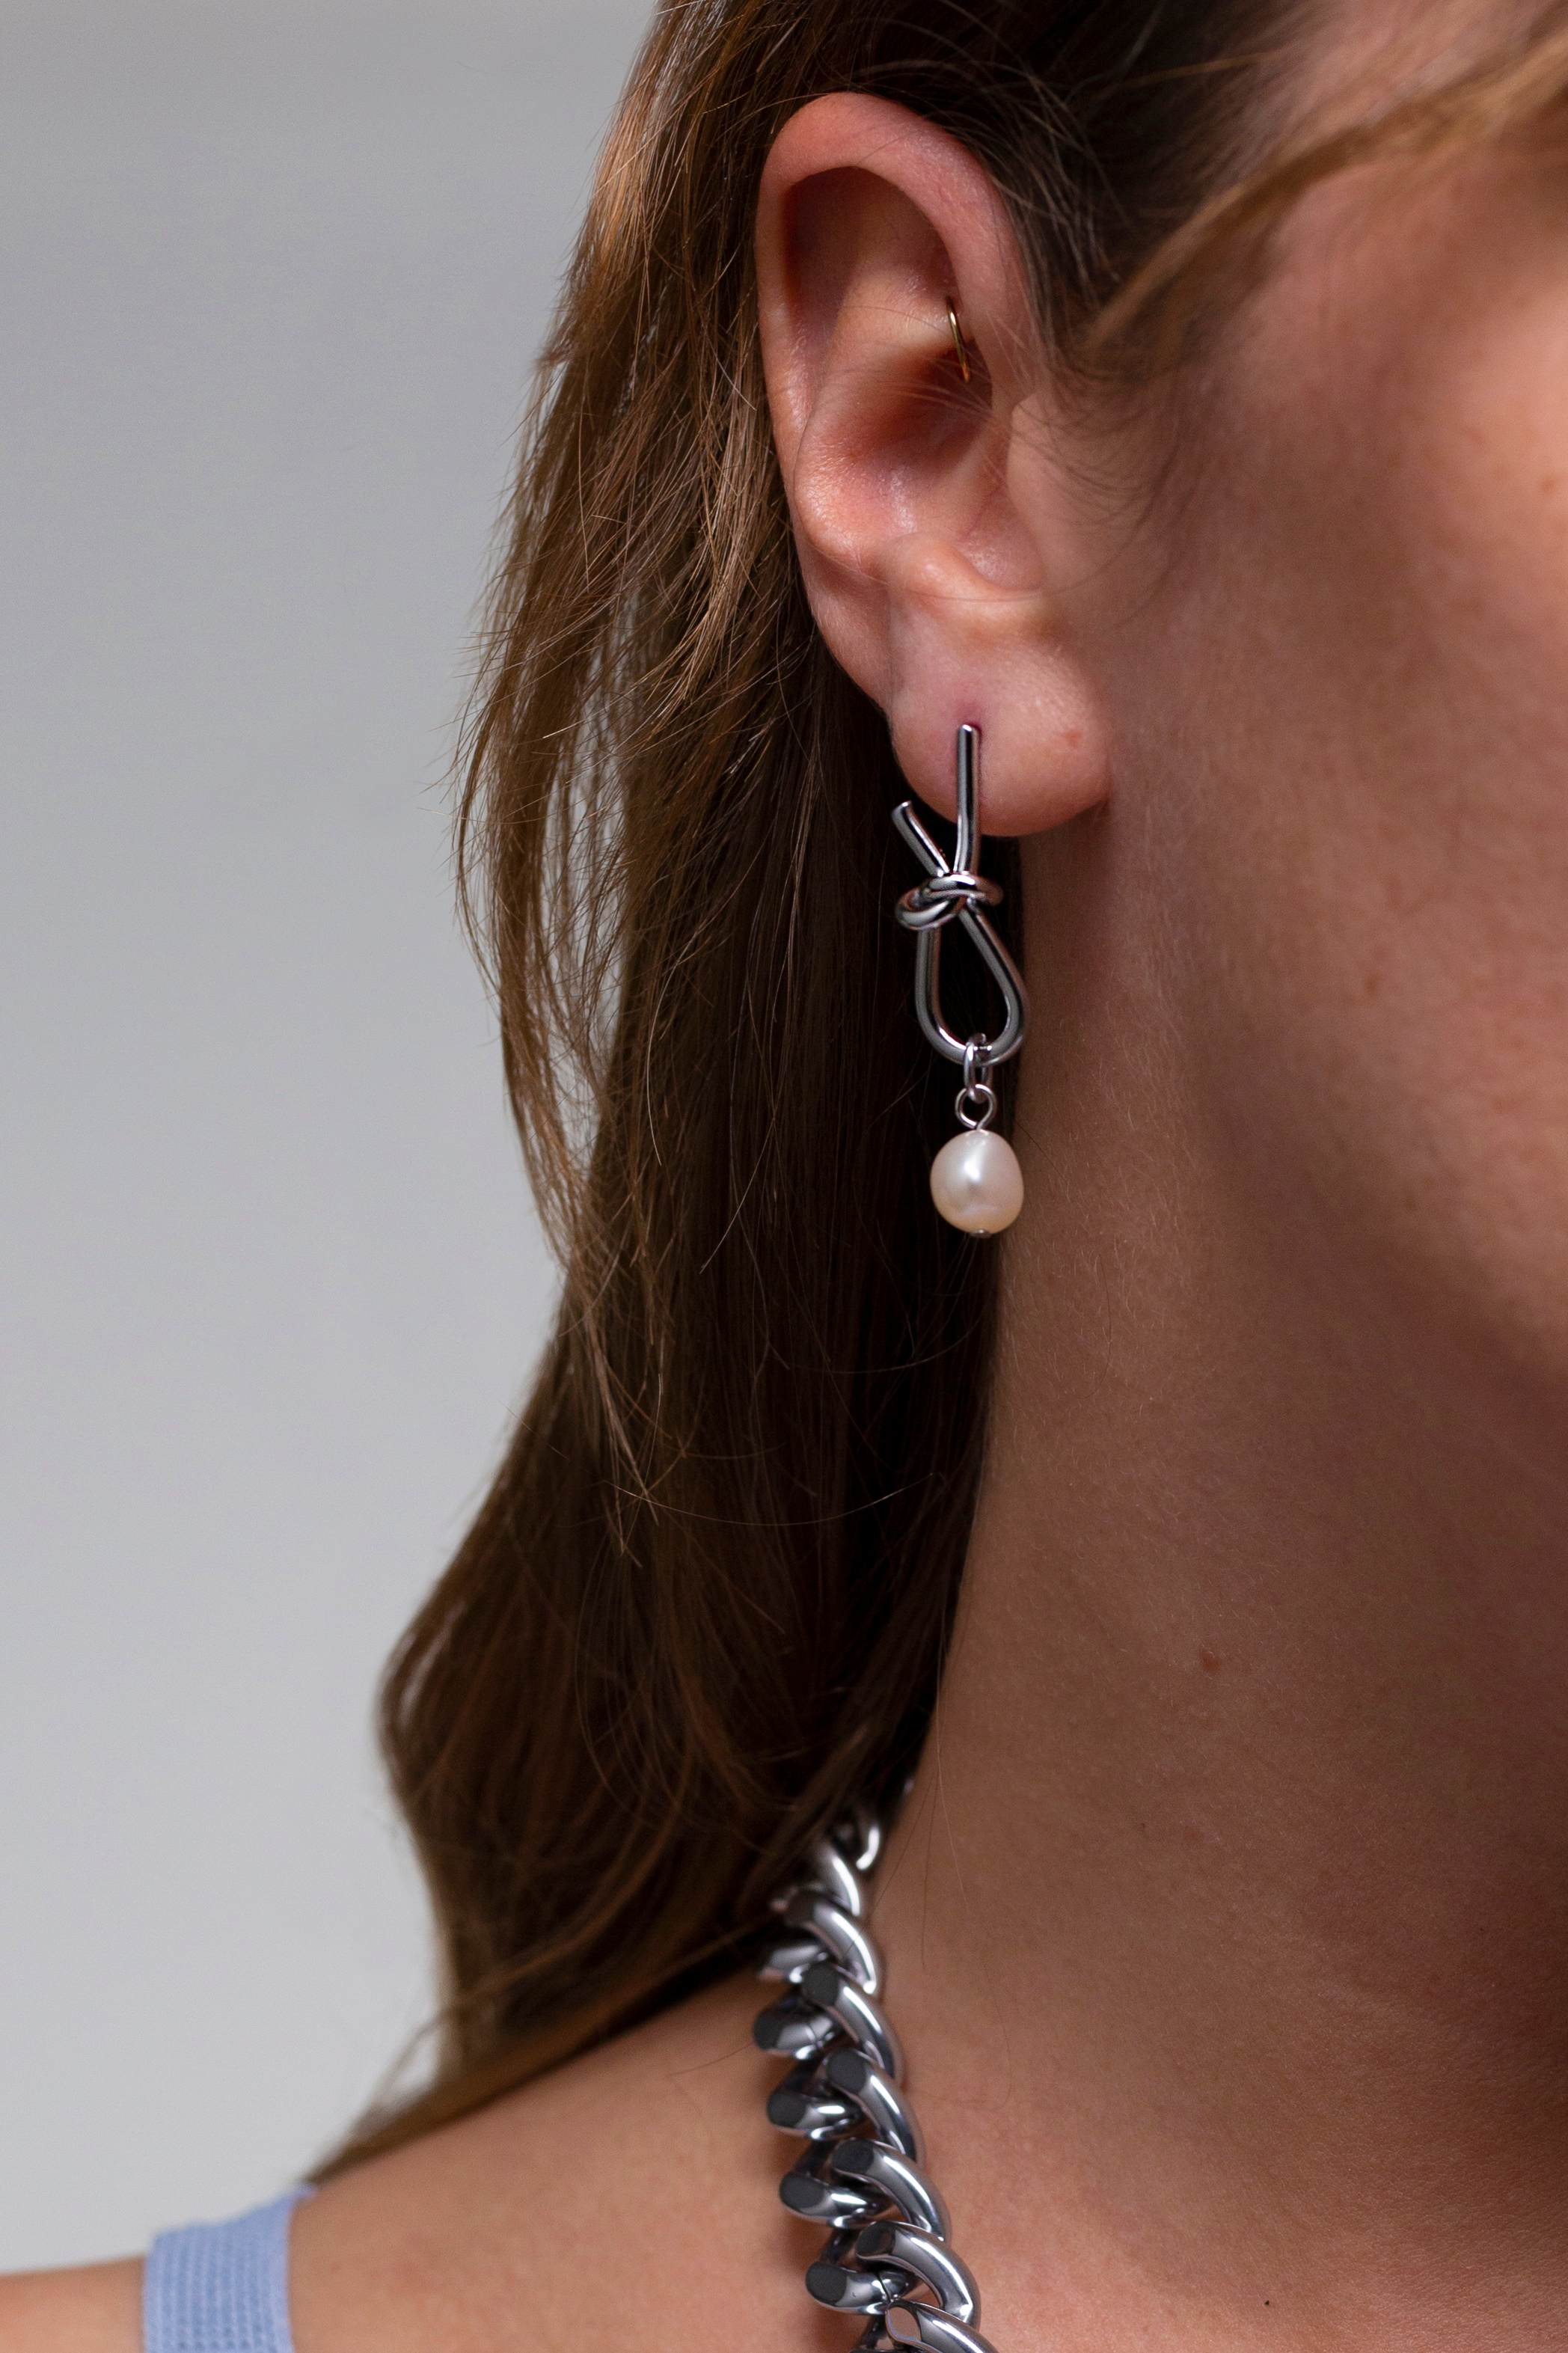 Casper Earrings Silver